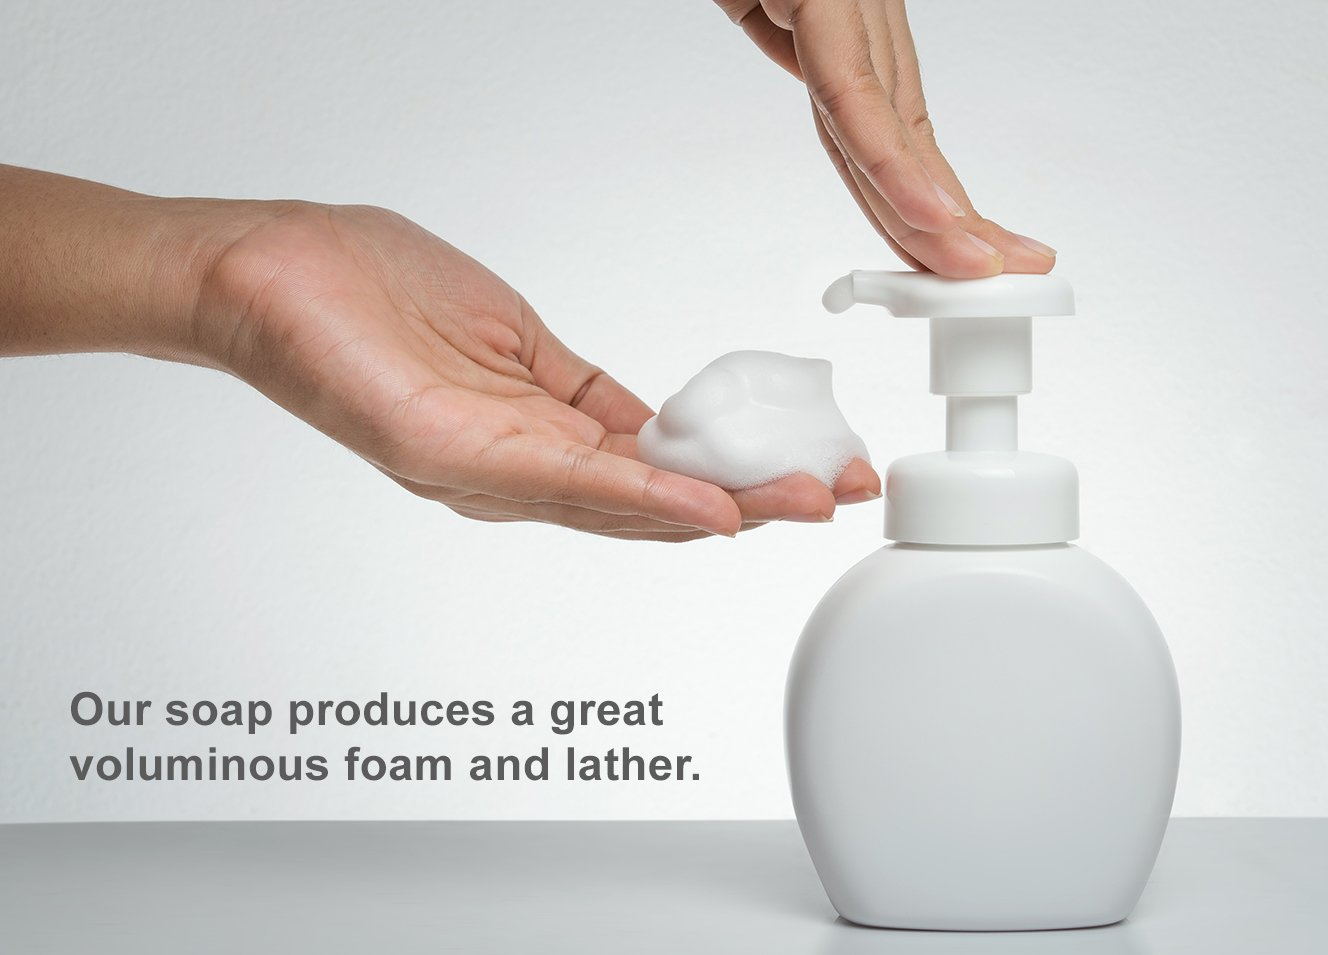 Clear Consumption Natural Lavender Foaming Hand Soap Refill 1/2 Gallon (64 oz) - Made from USDA Organic Vegetable Oils - For Commercial & Personal Foaming Soap Dispensers by Clear Consumption (Image #7)